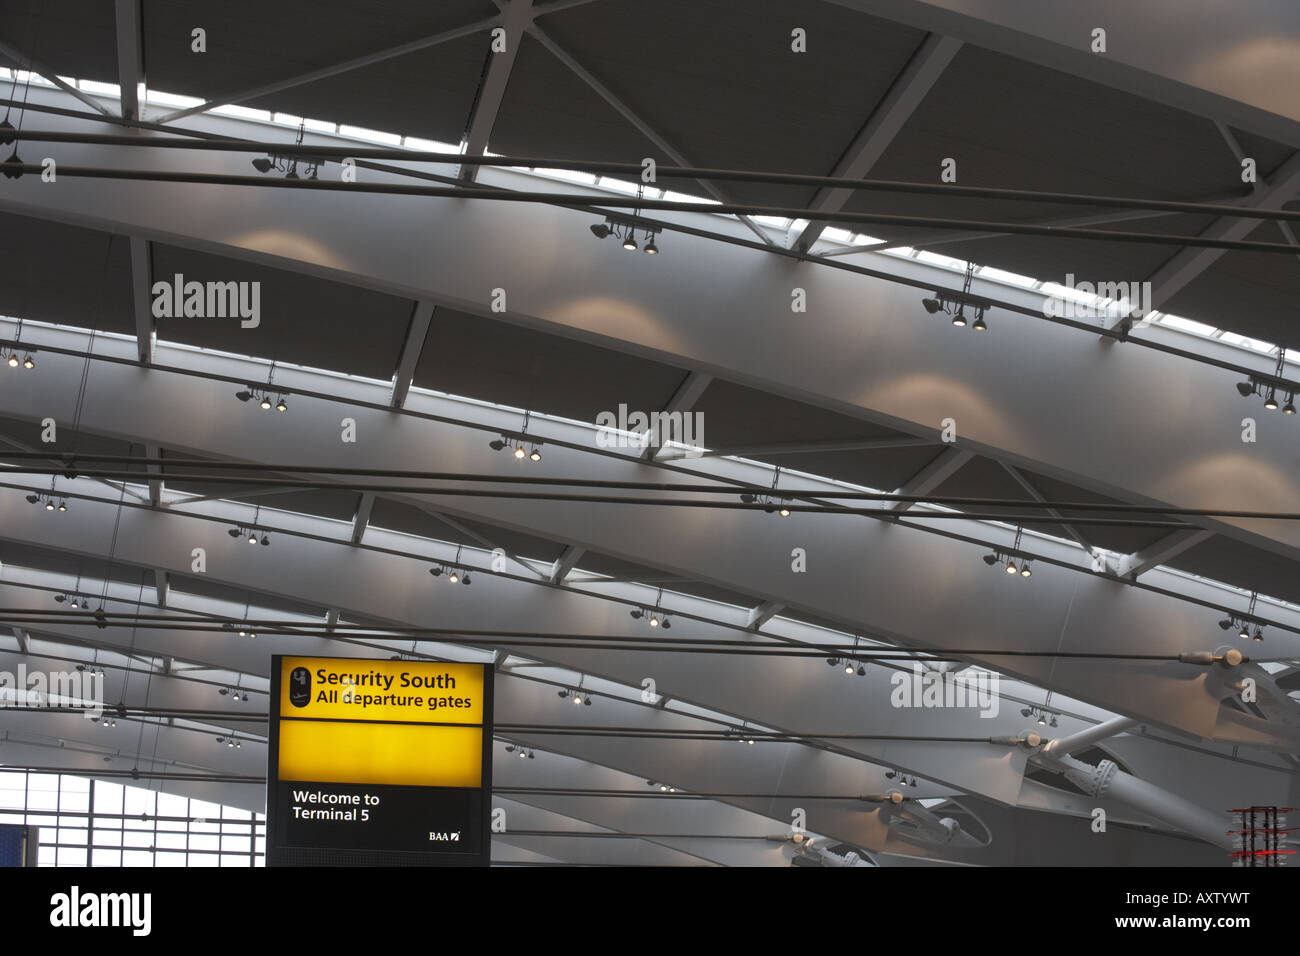 Looking upwards to security and departures sign in newly opened London Heathrow Airport's Terminal 5 building - Stock Image